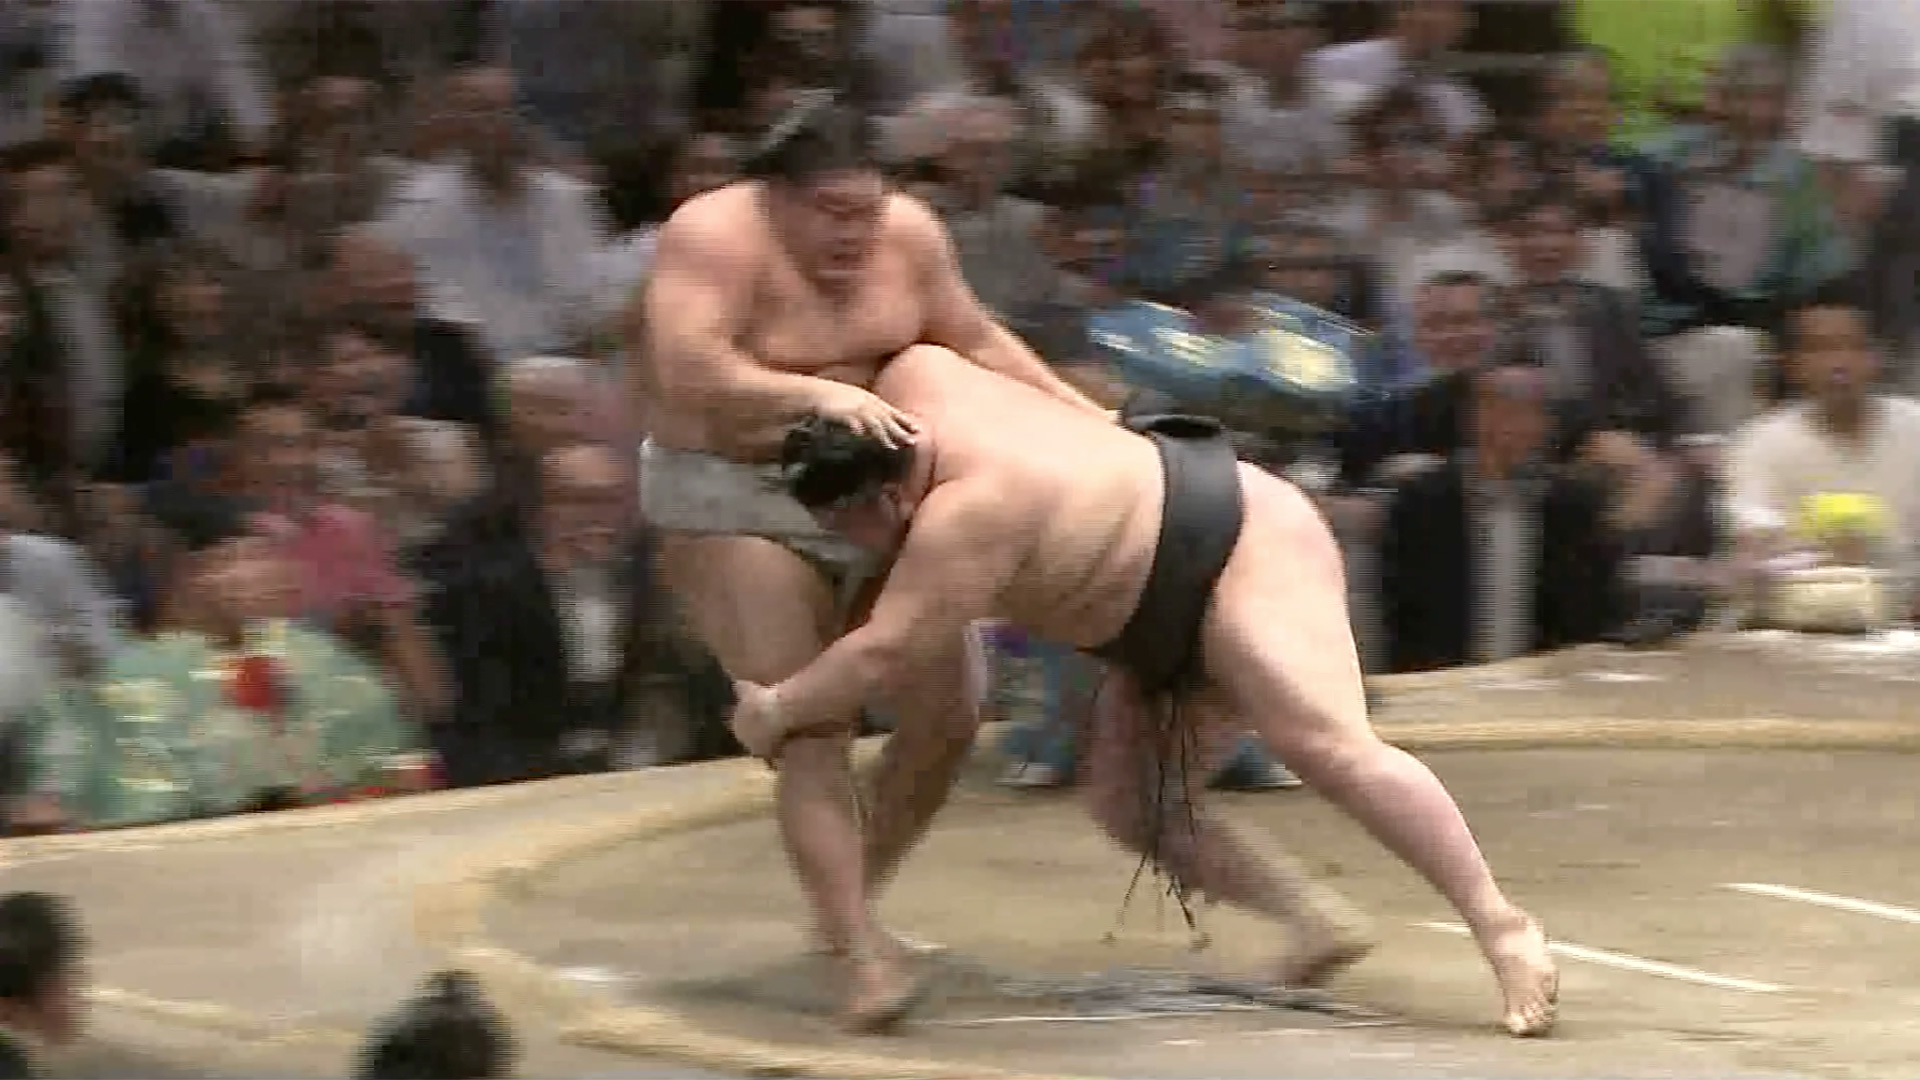 Watashikomi/ Thigh grabbing push down